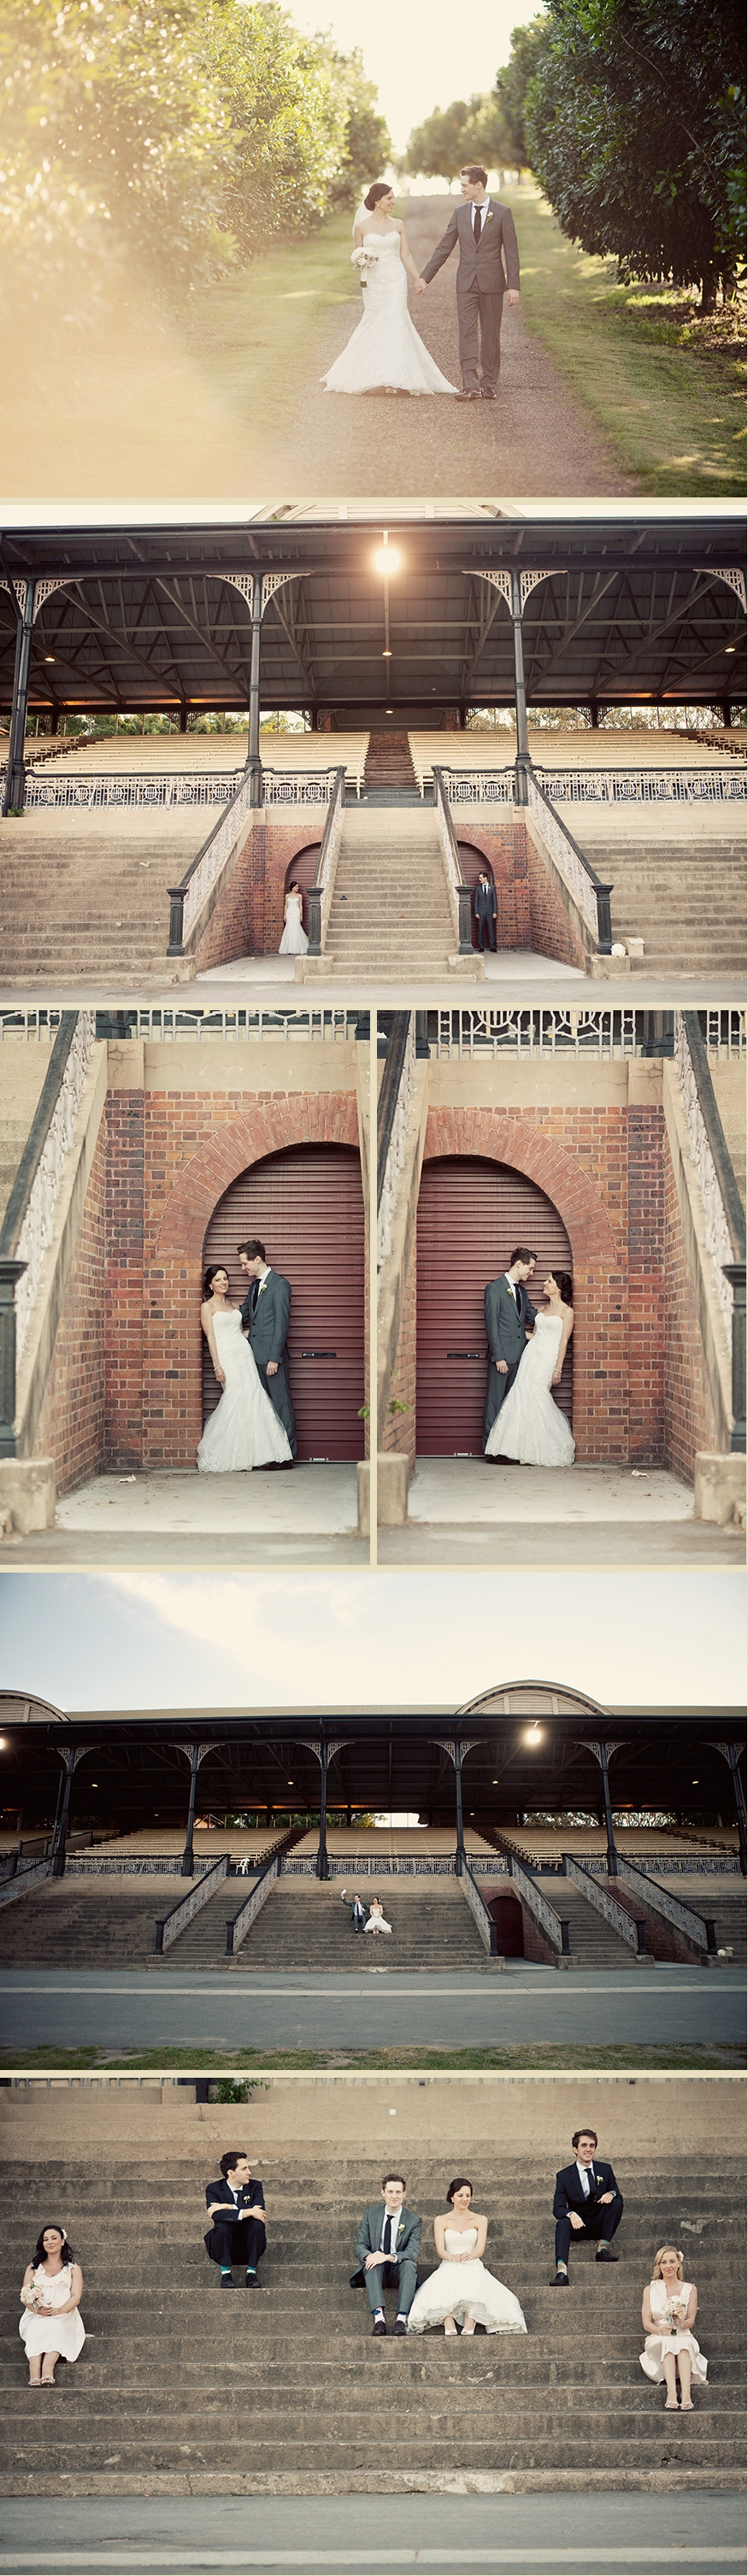 Brisbane Wedding Phoographer Blog-collage-1326252574298